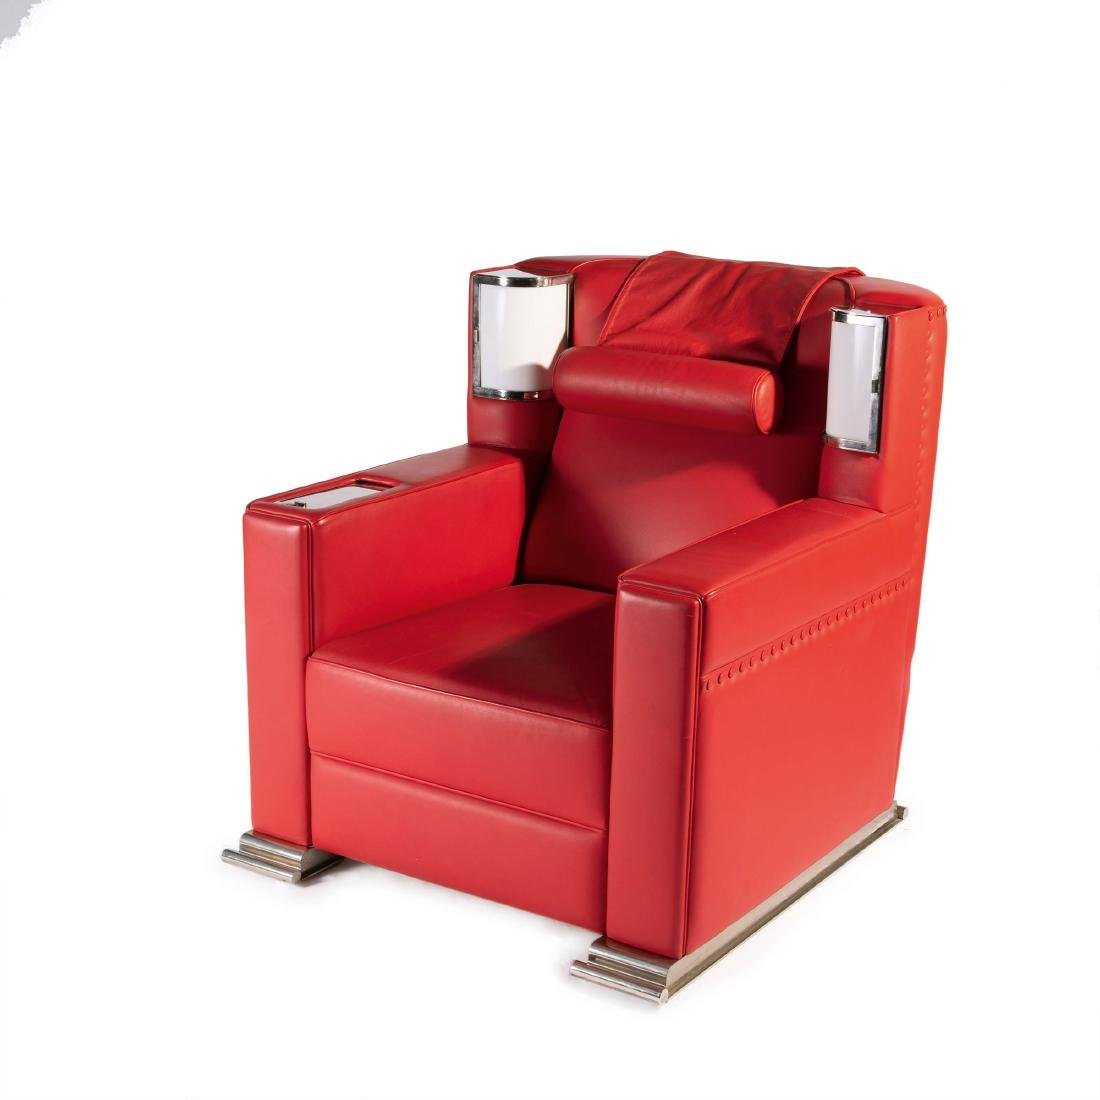 'Red comfortable chair', 1931